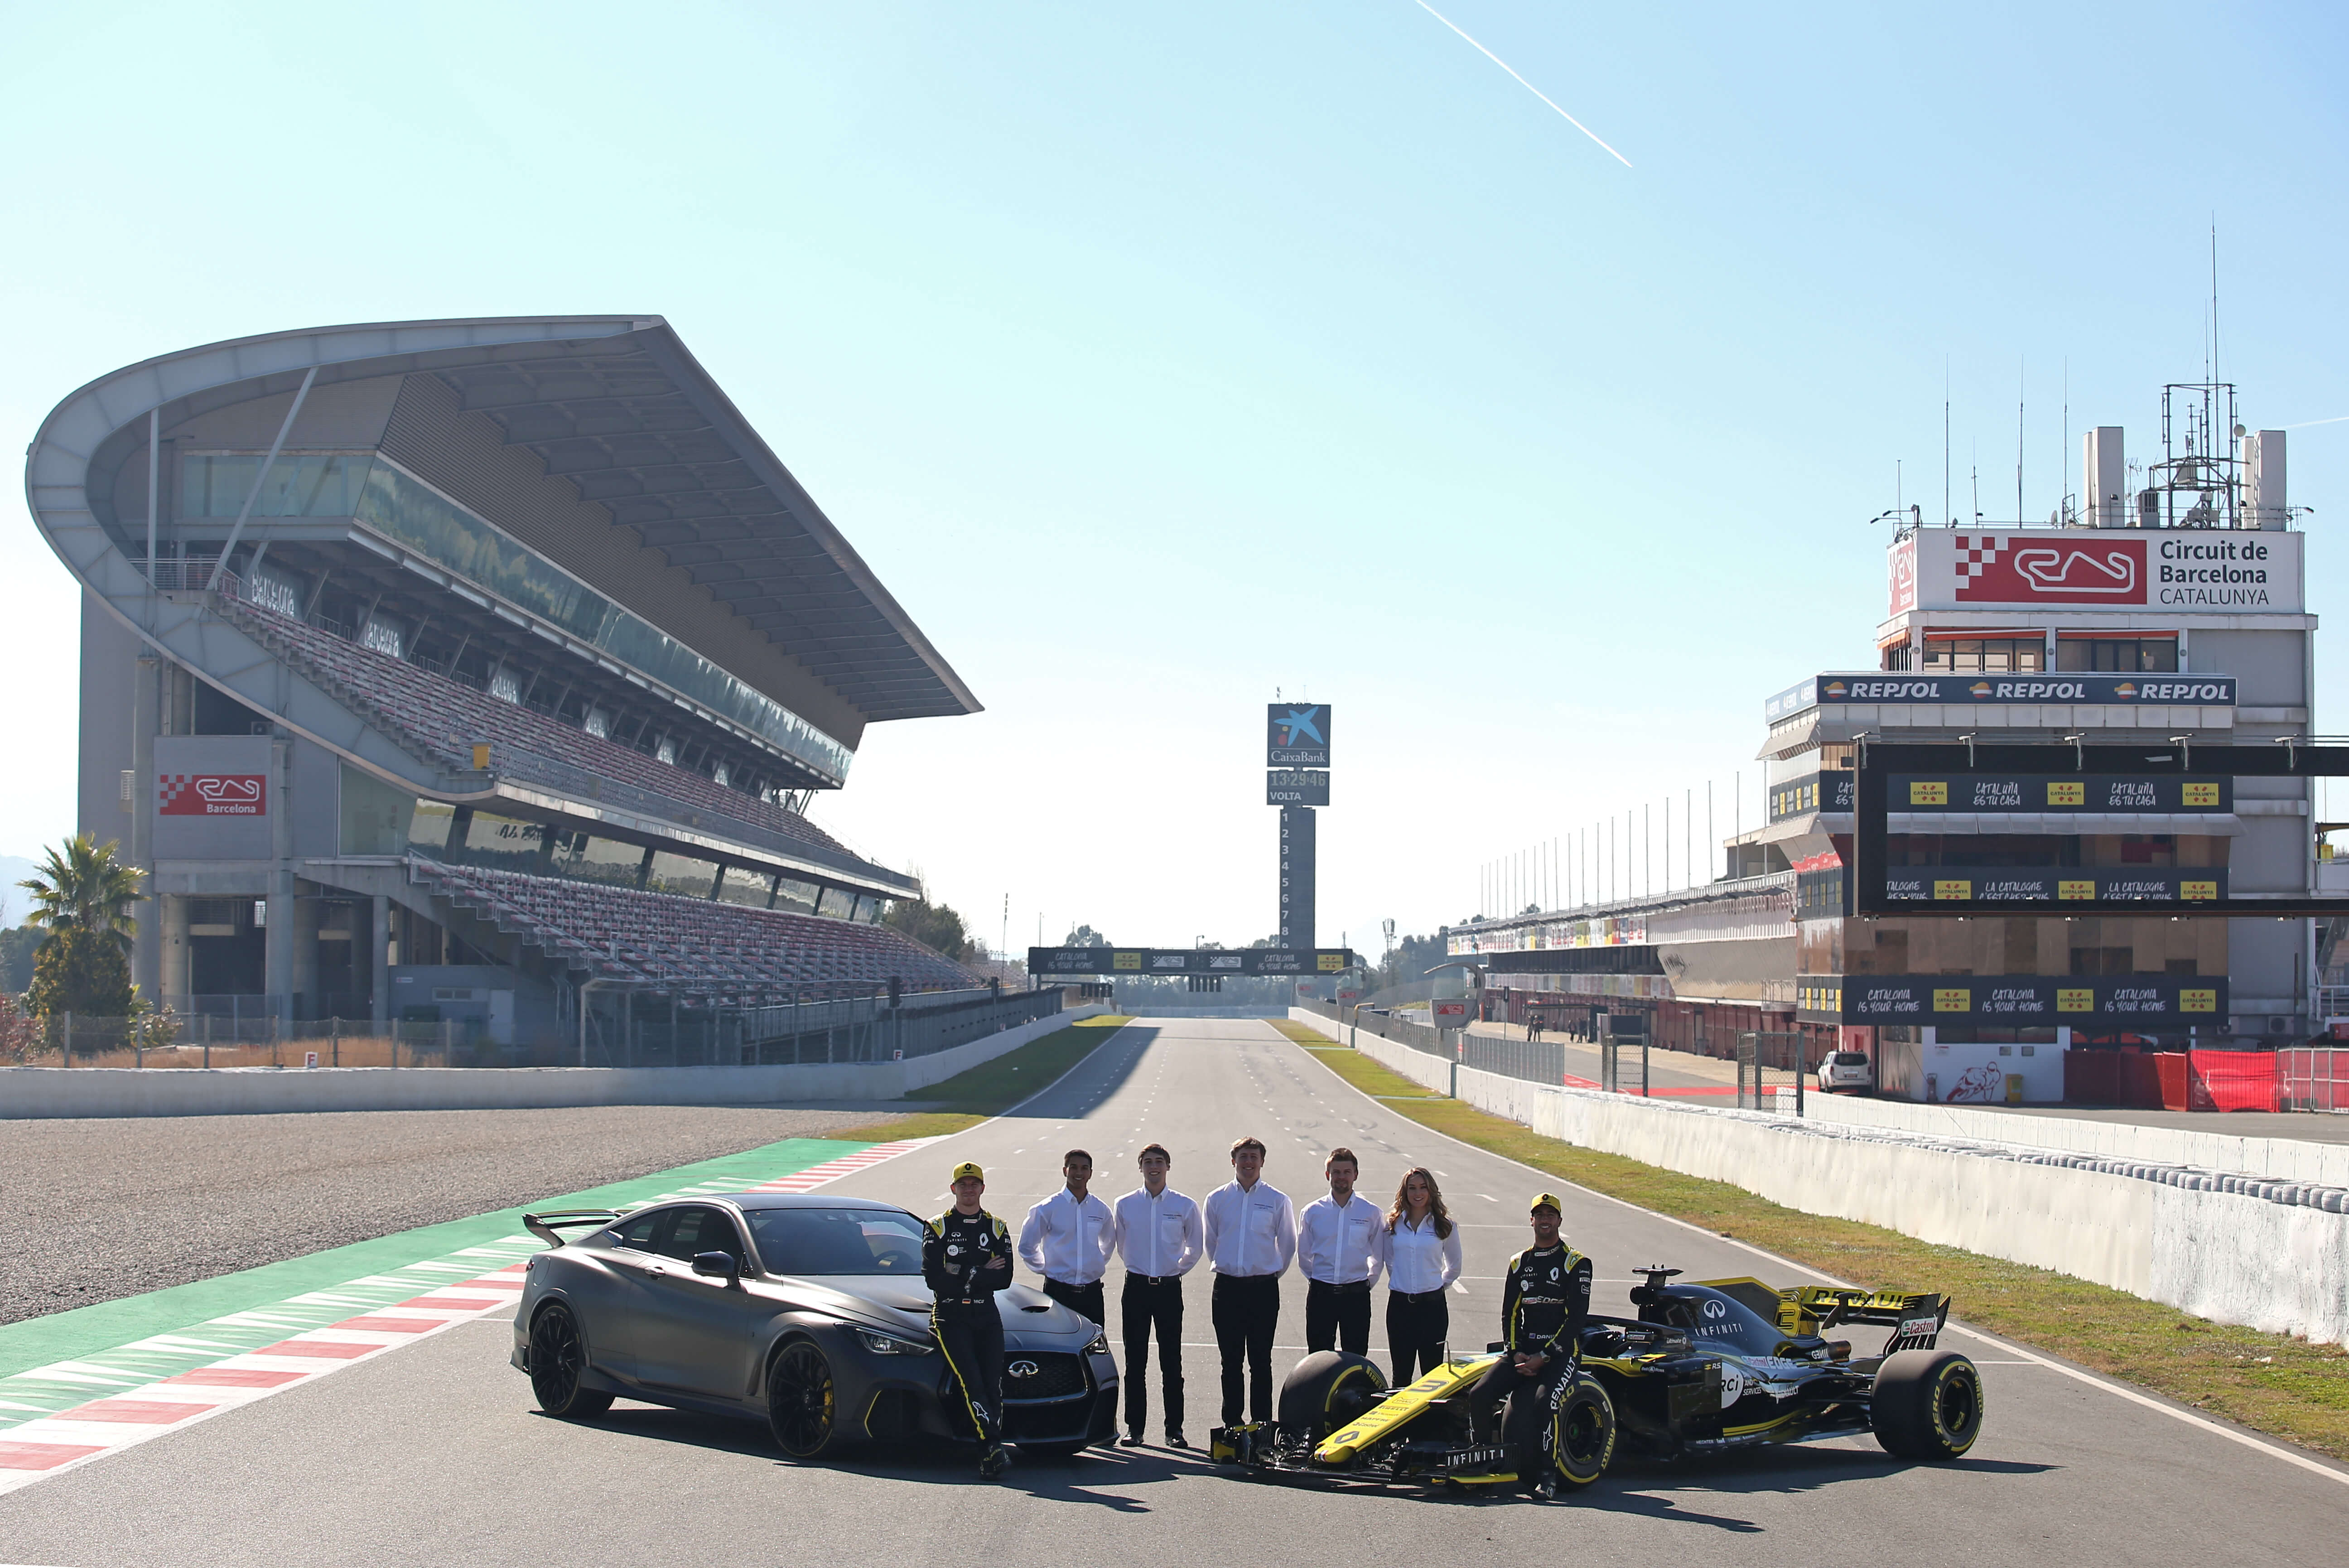 2019 Renault Sport F1 Team Filming Day